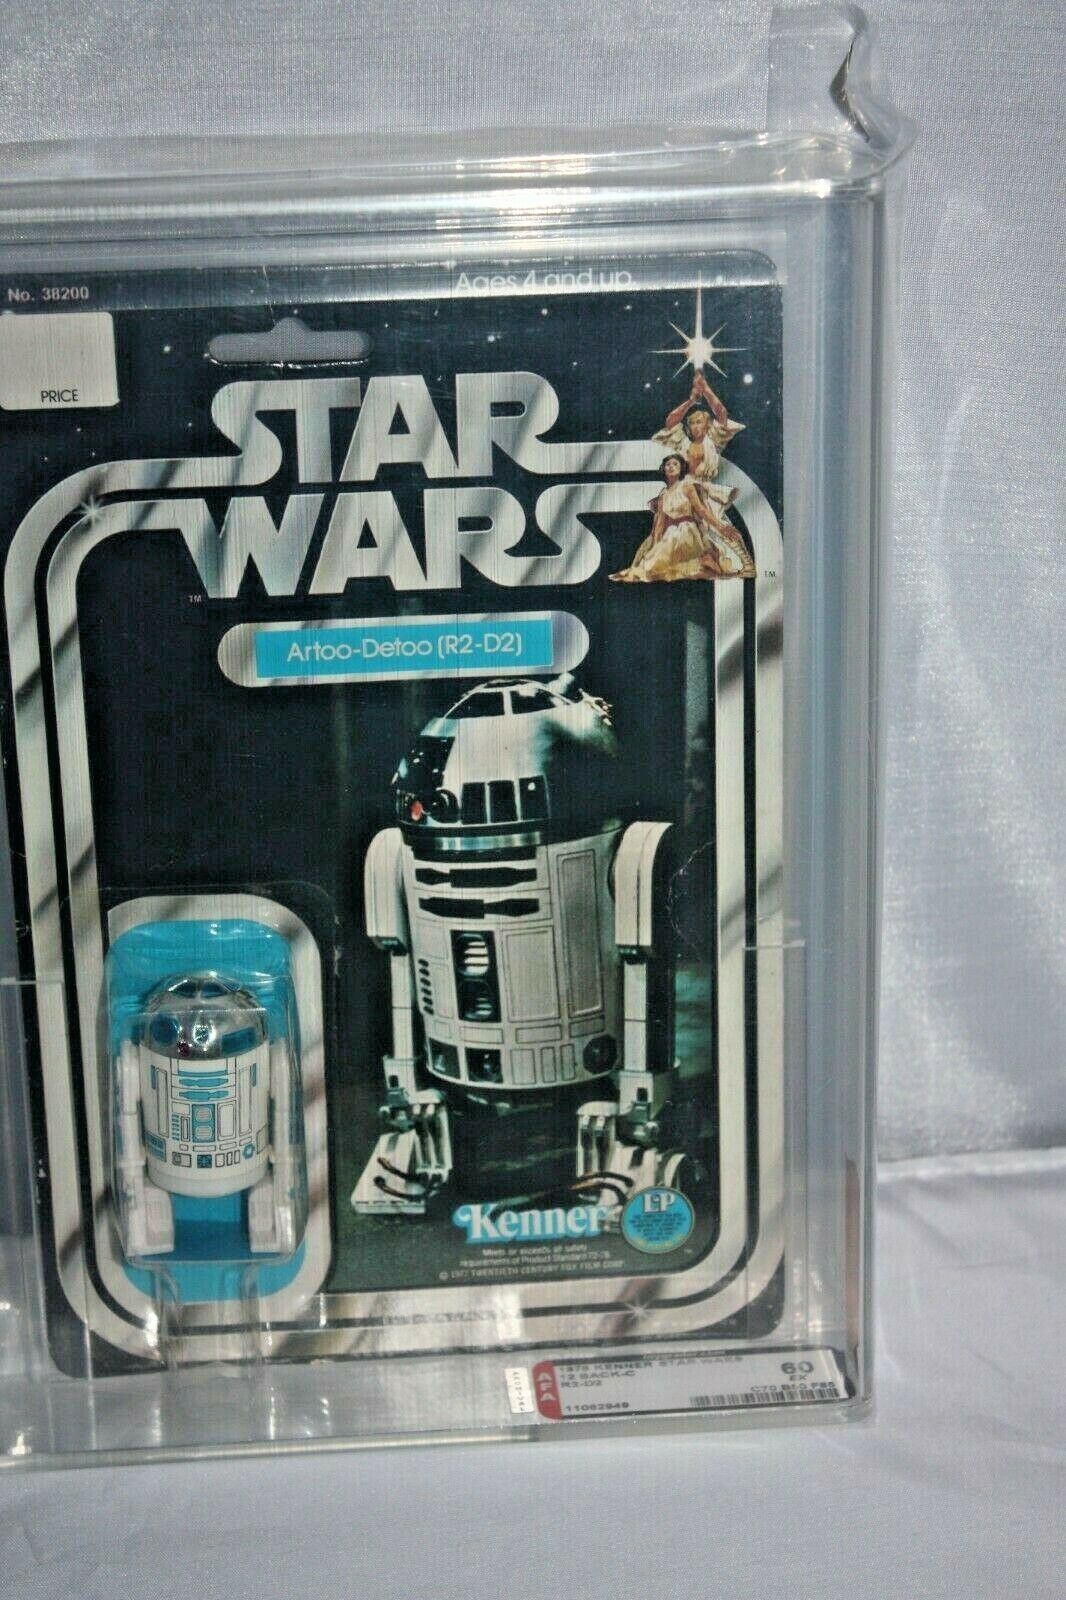 Vintage Star Wars Action Figure R2D2 with Launching Lightsaber Star Wars Figures 1990s Kenner Star Wars Gift